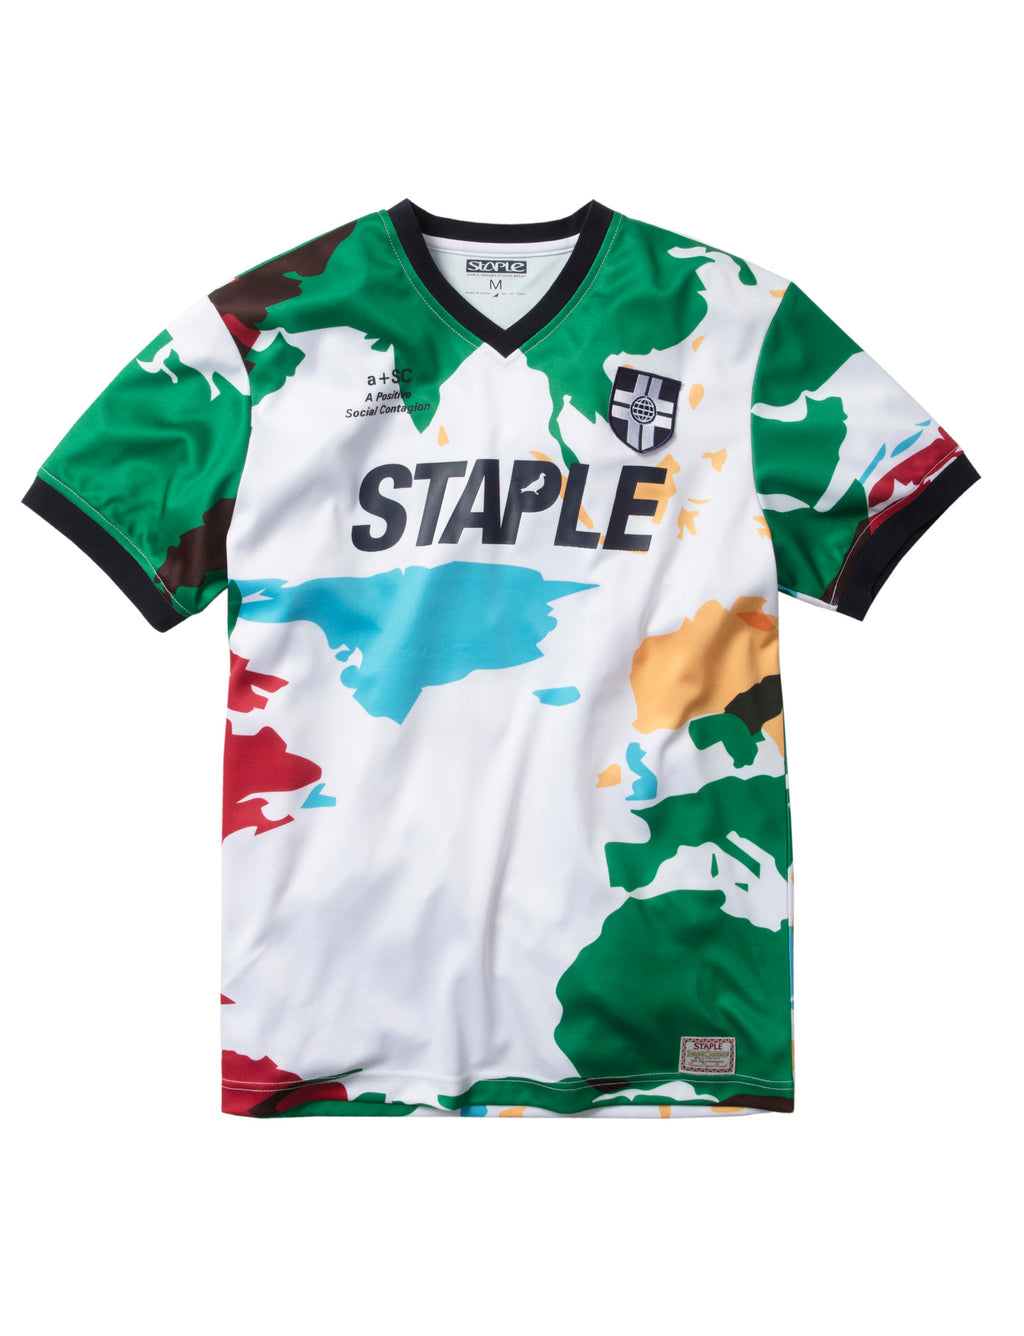 World Tour Soccer Jersey - Tee | Staple Pigeon